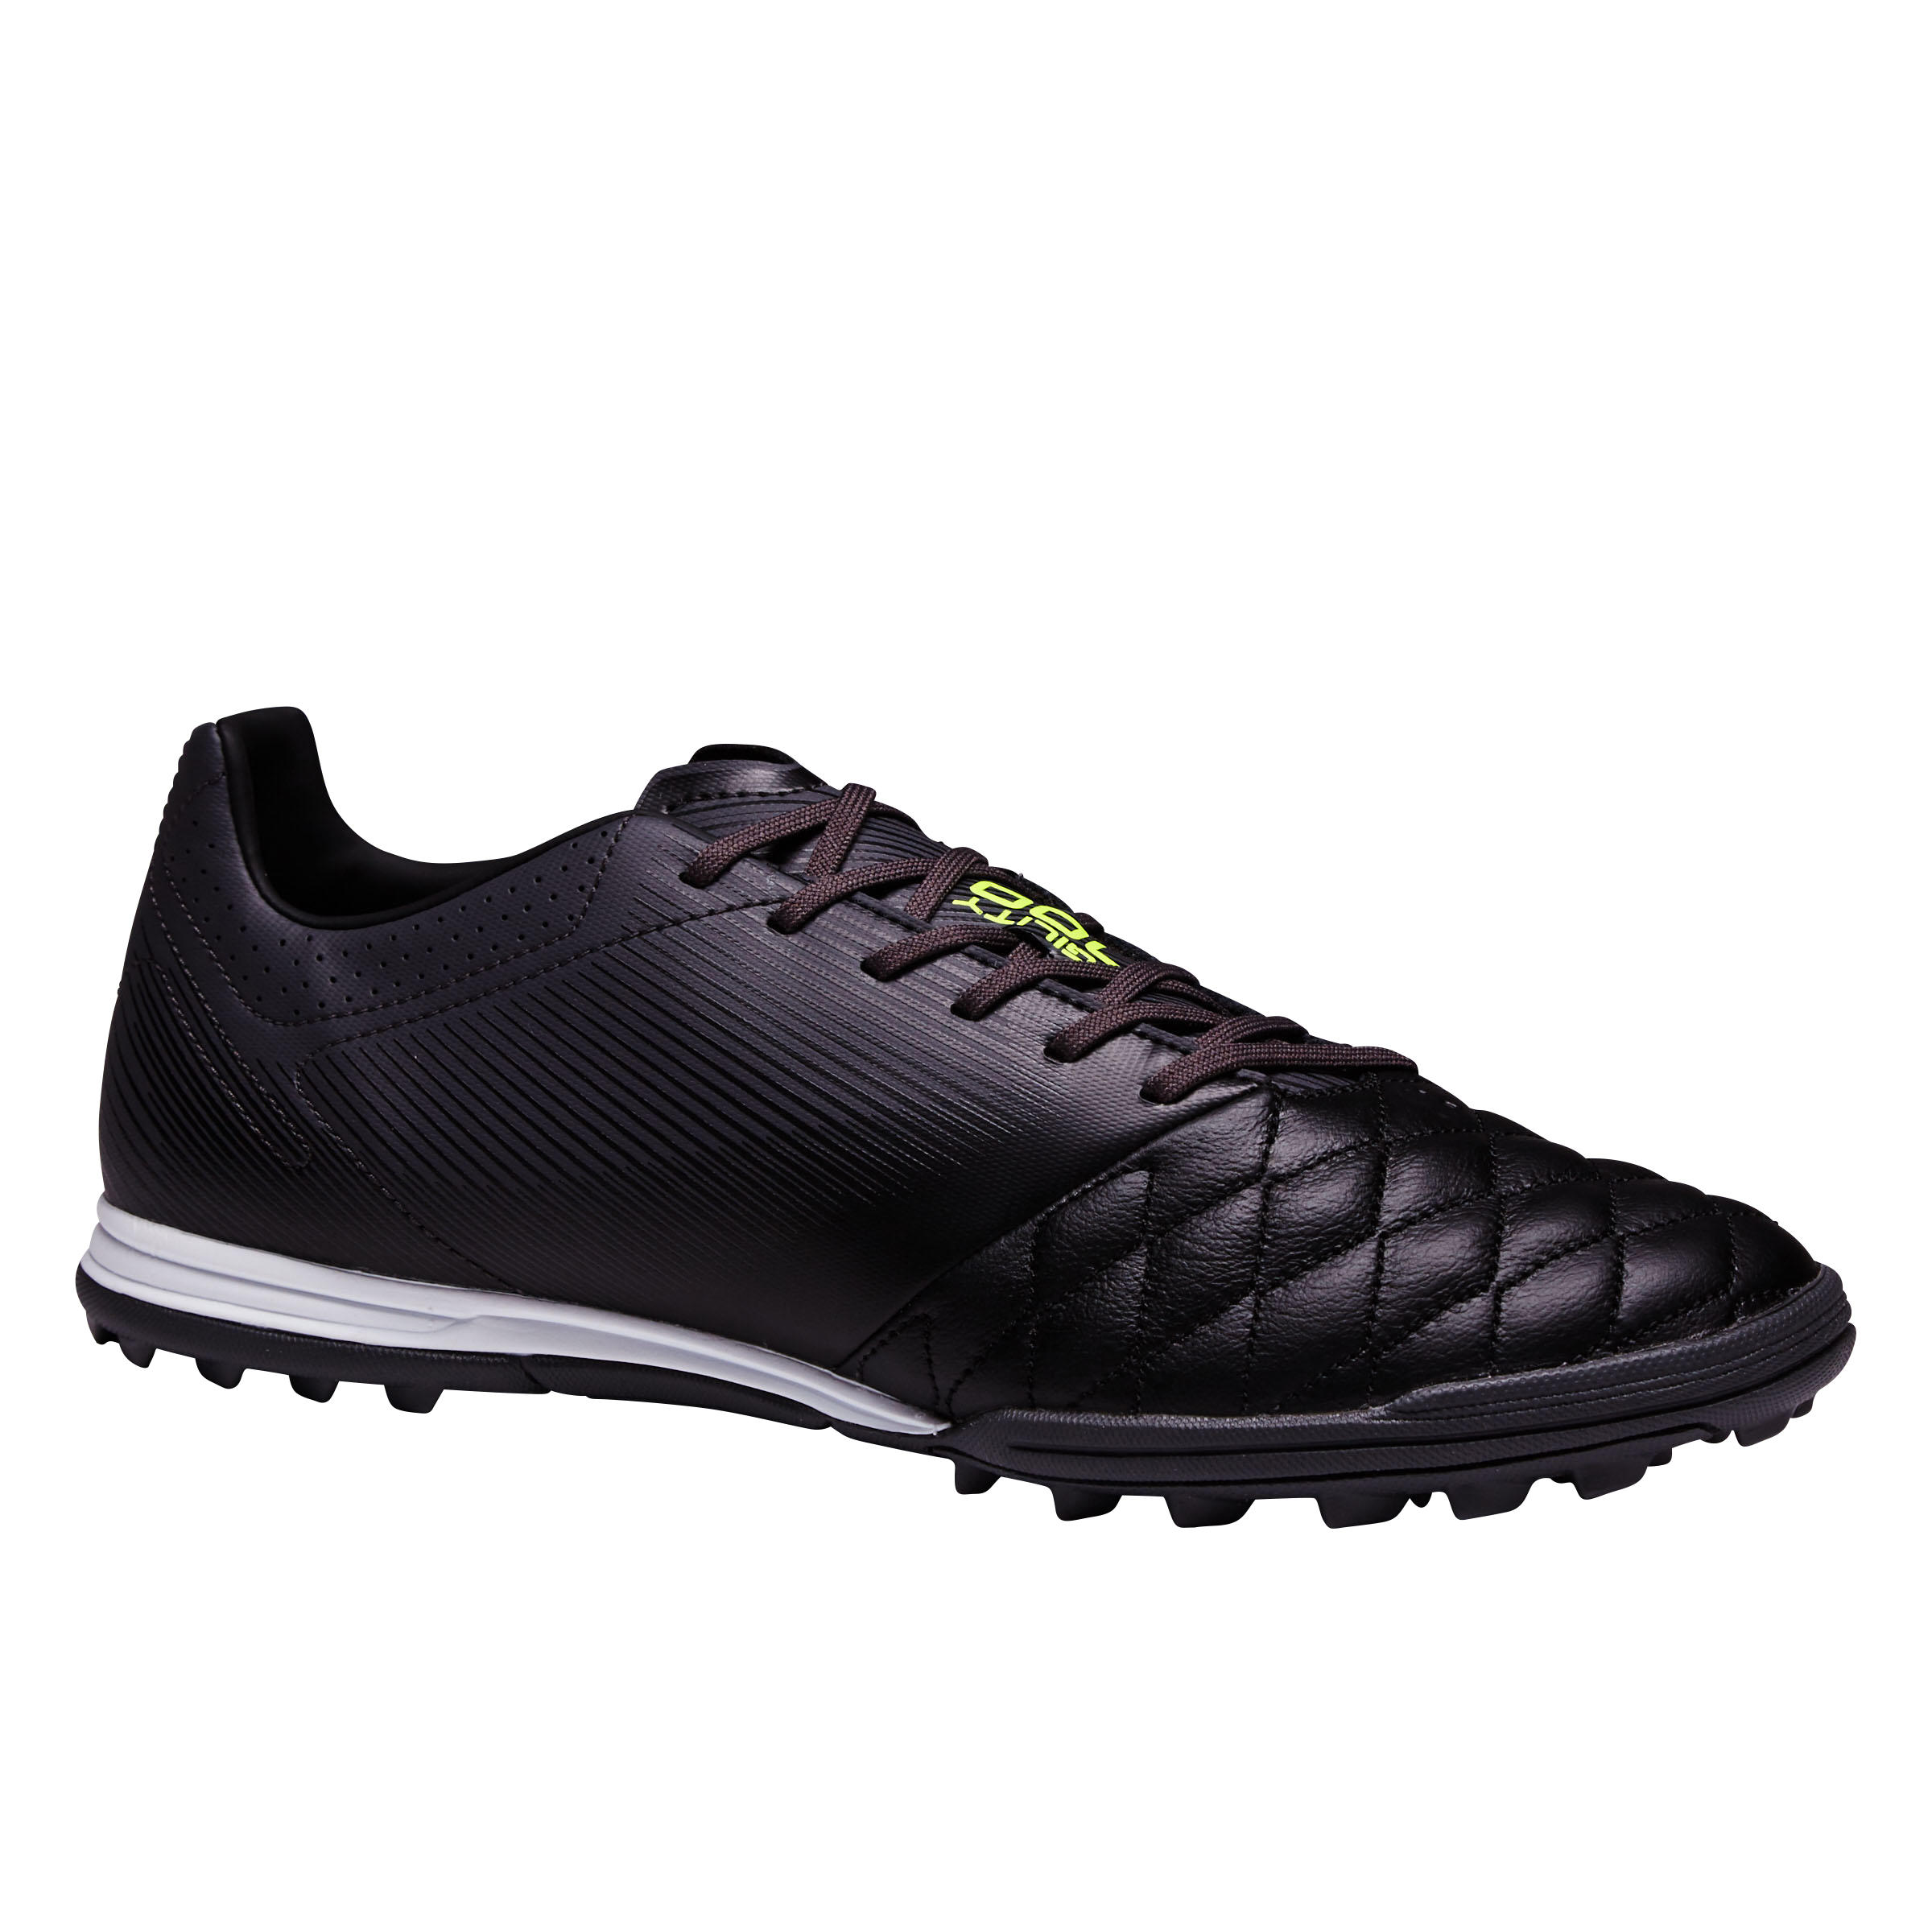 Agility 700 Adult HG Hard Pitch Soccer Cleats - Black